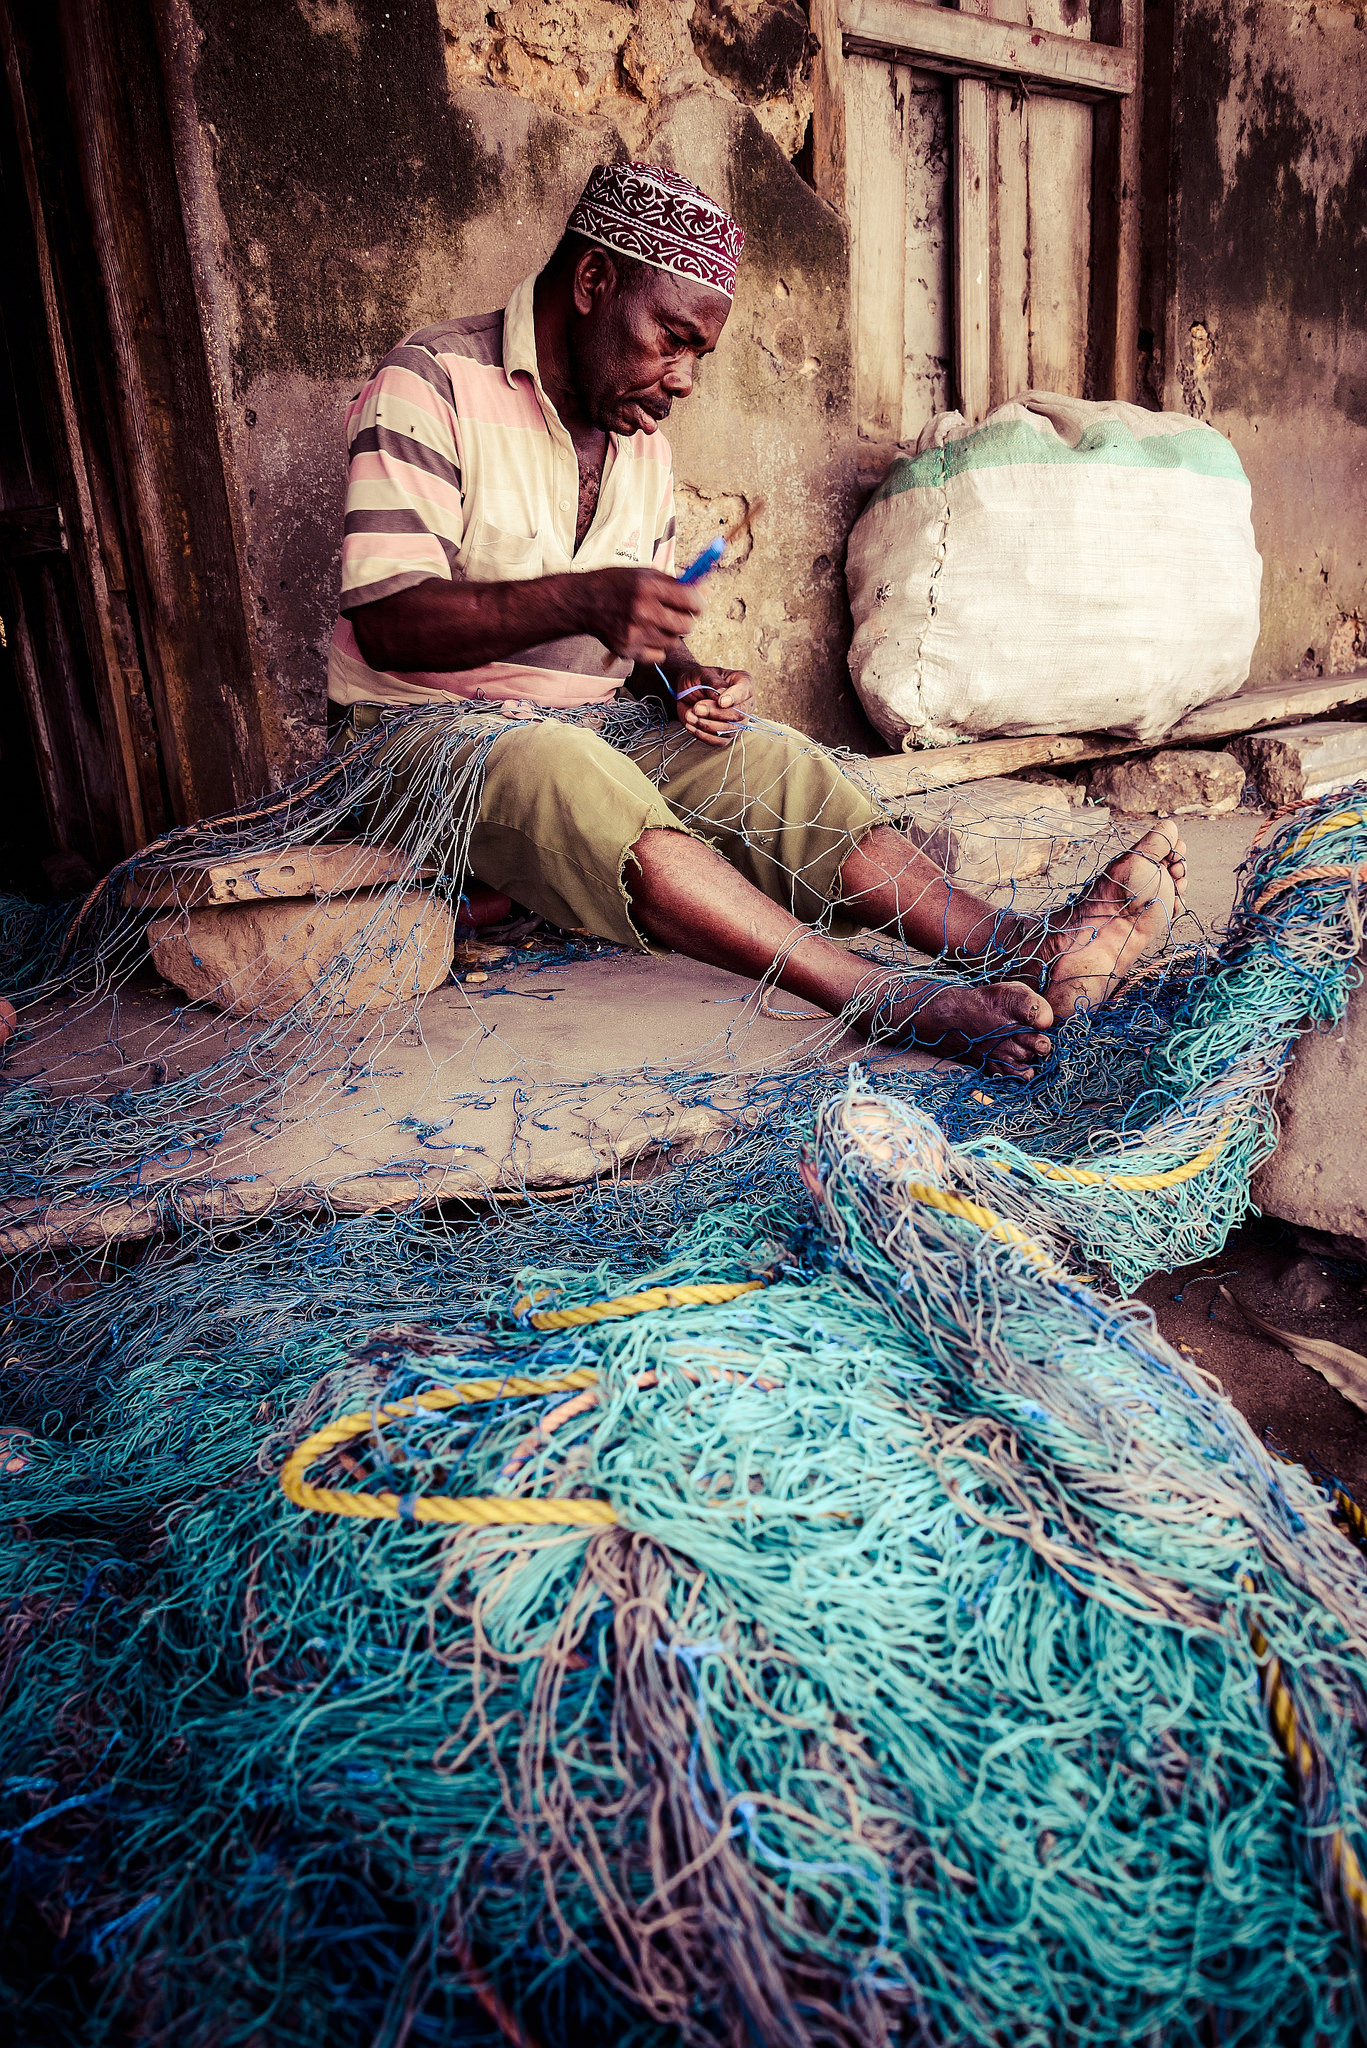 Mending nets and preparing for the next night in the fishing harbour of Stonetown, Zanzibar. Flickr - Christiane Birr.